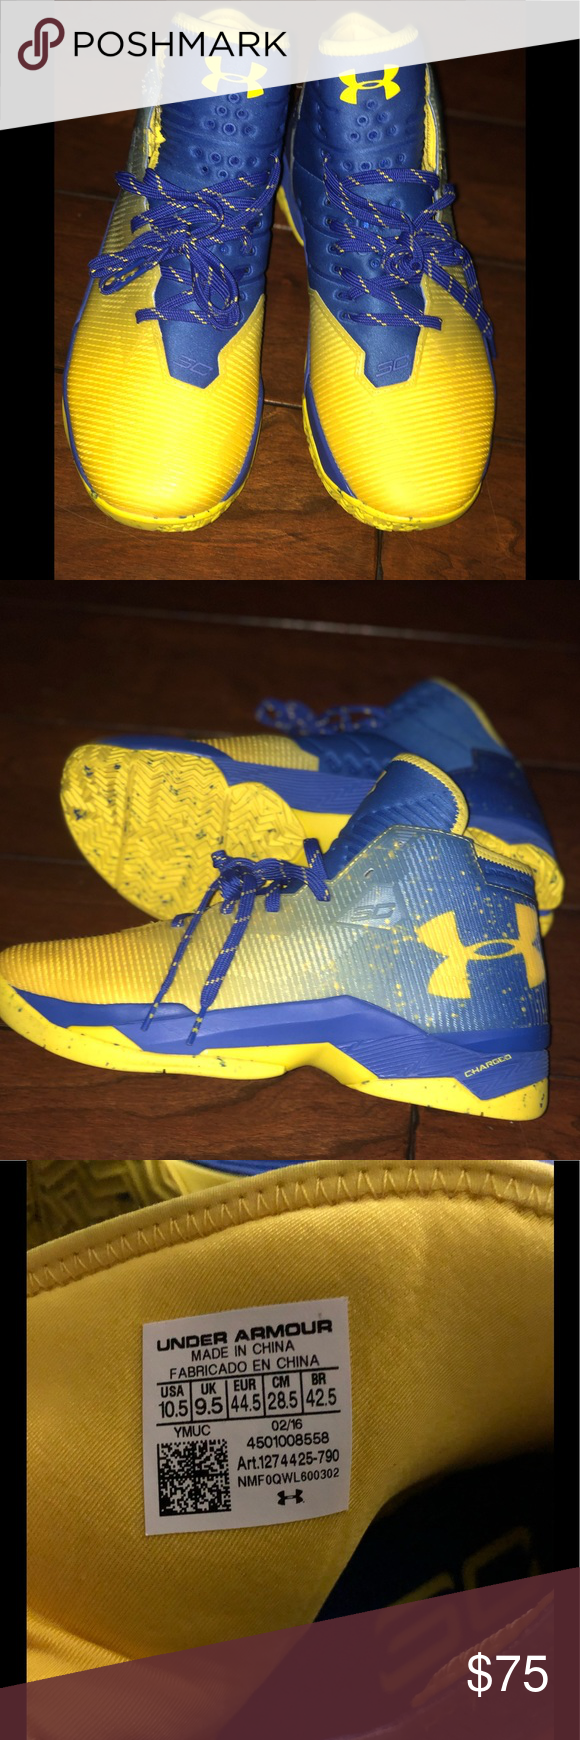 sale retailer ad872 0d4e2 NWOB Under Armour Size 10 1/2 Curry Basketball NWOB Under ...